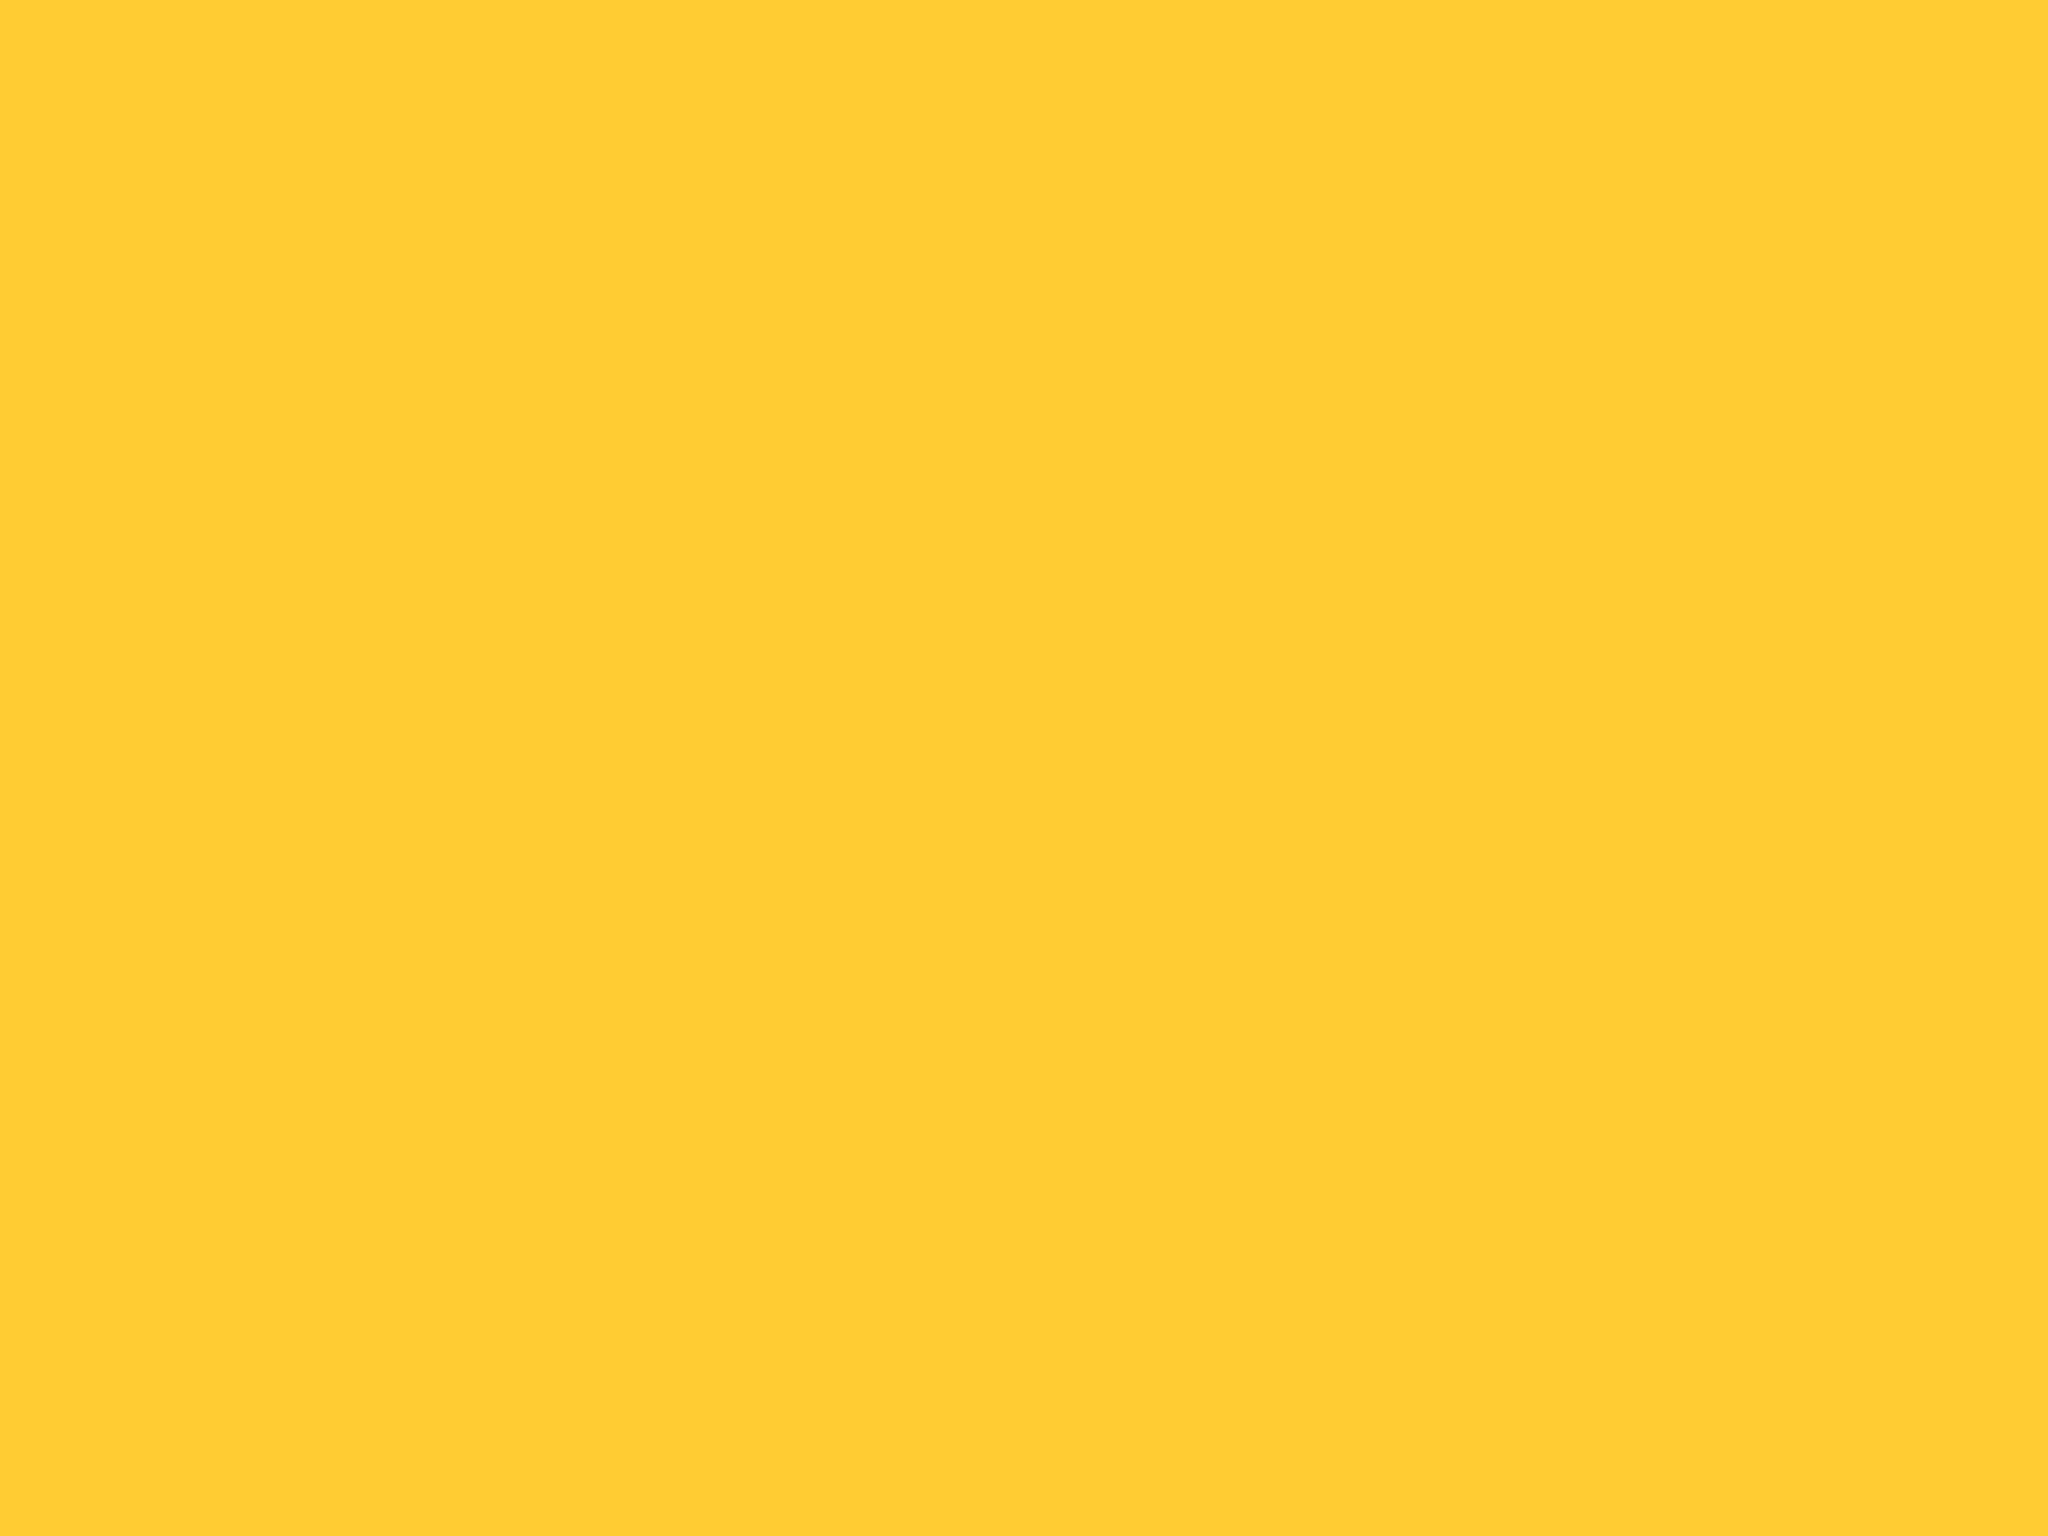 2048x1536 Sunglow Solid Color Background